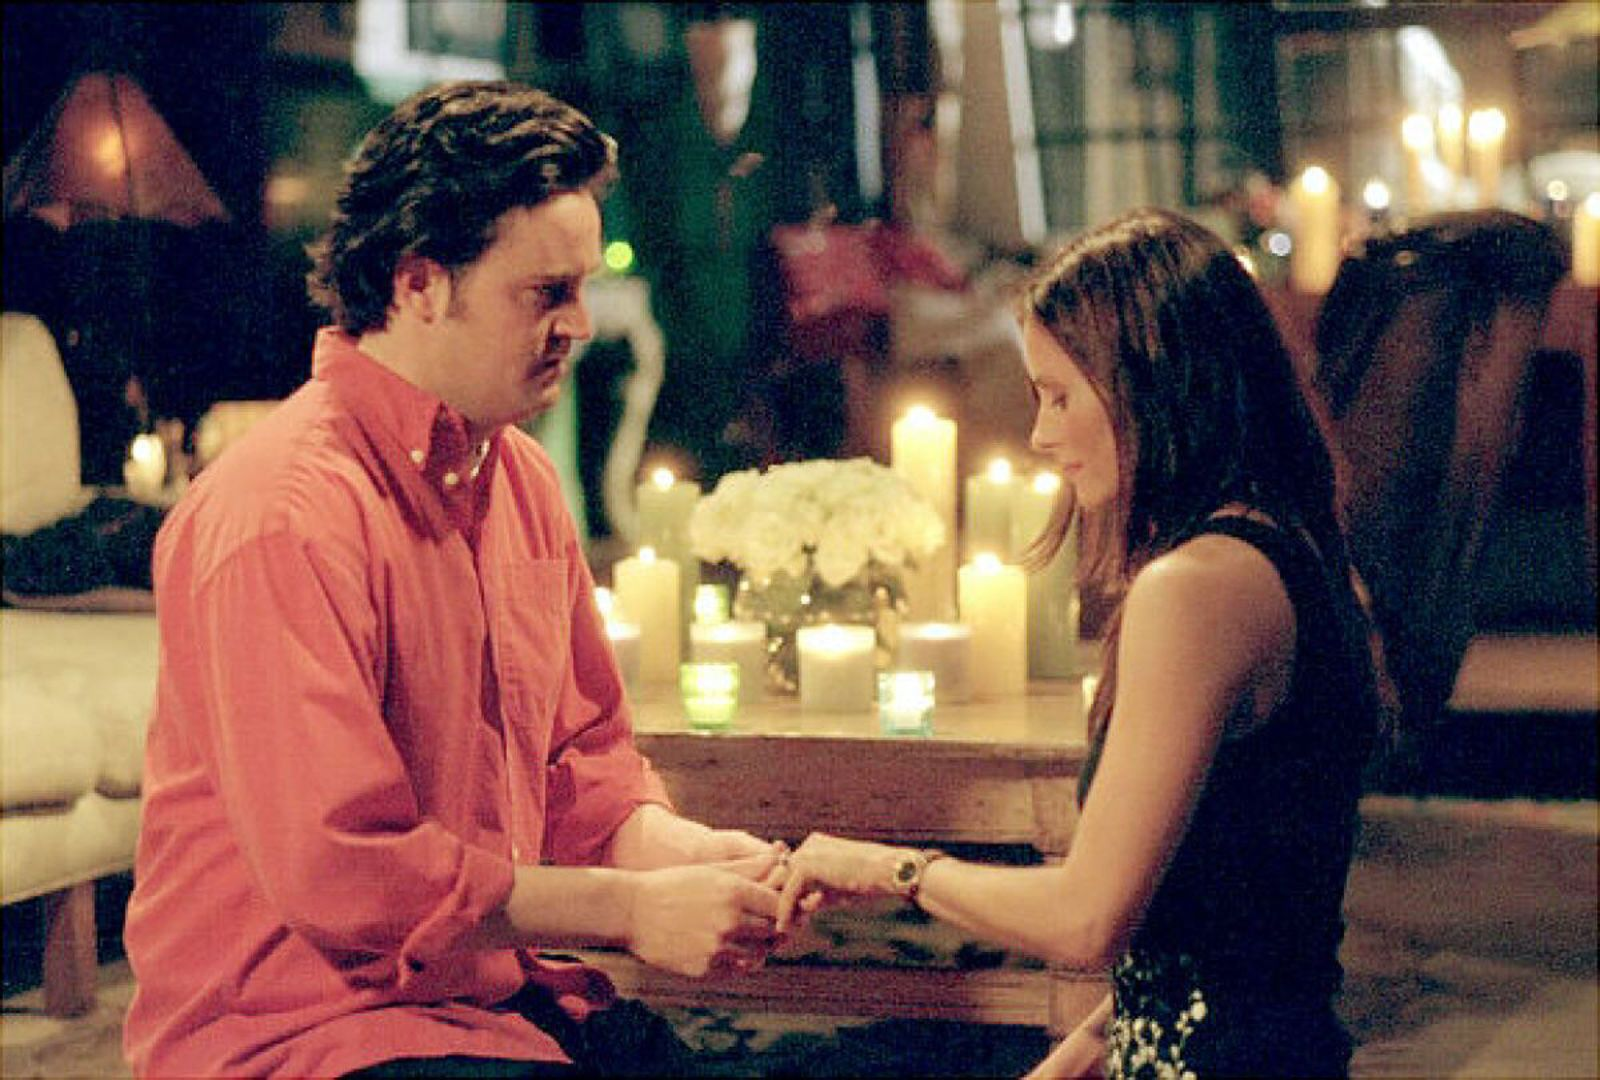 How long after dating should you propose